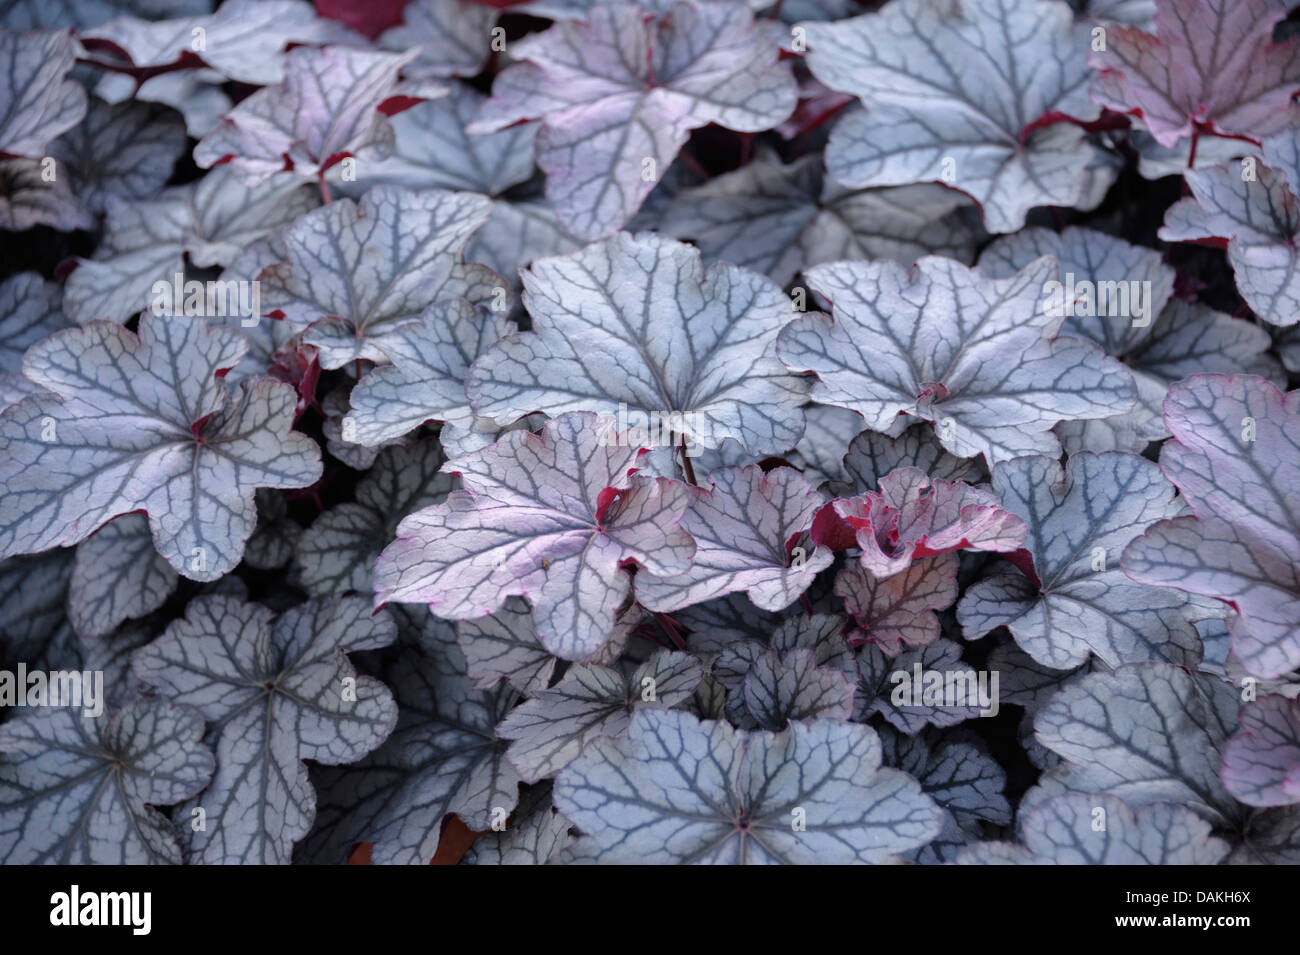 Heuchera  (Heuchera 'Seasons King', Heuchera Seasons King), cultivar Seasons King - Stock Image